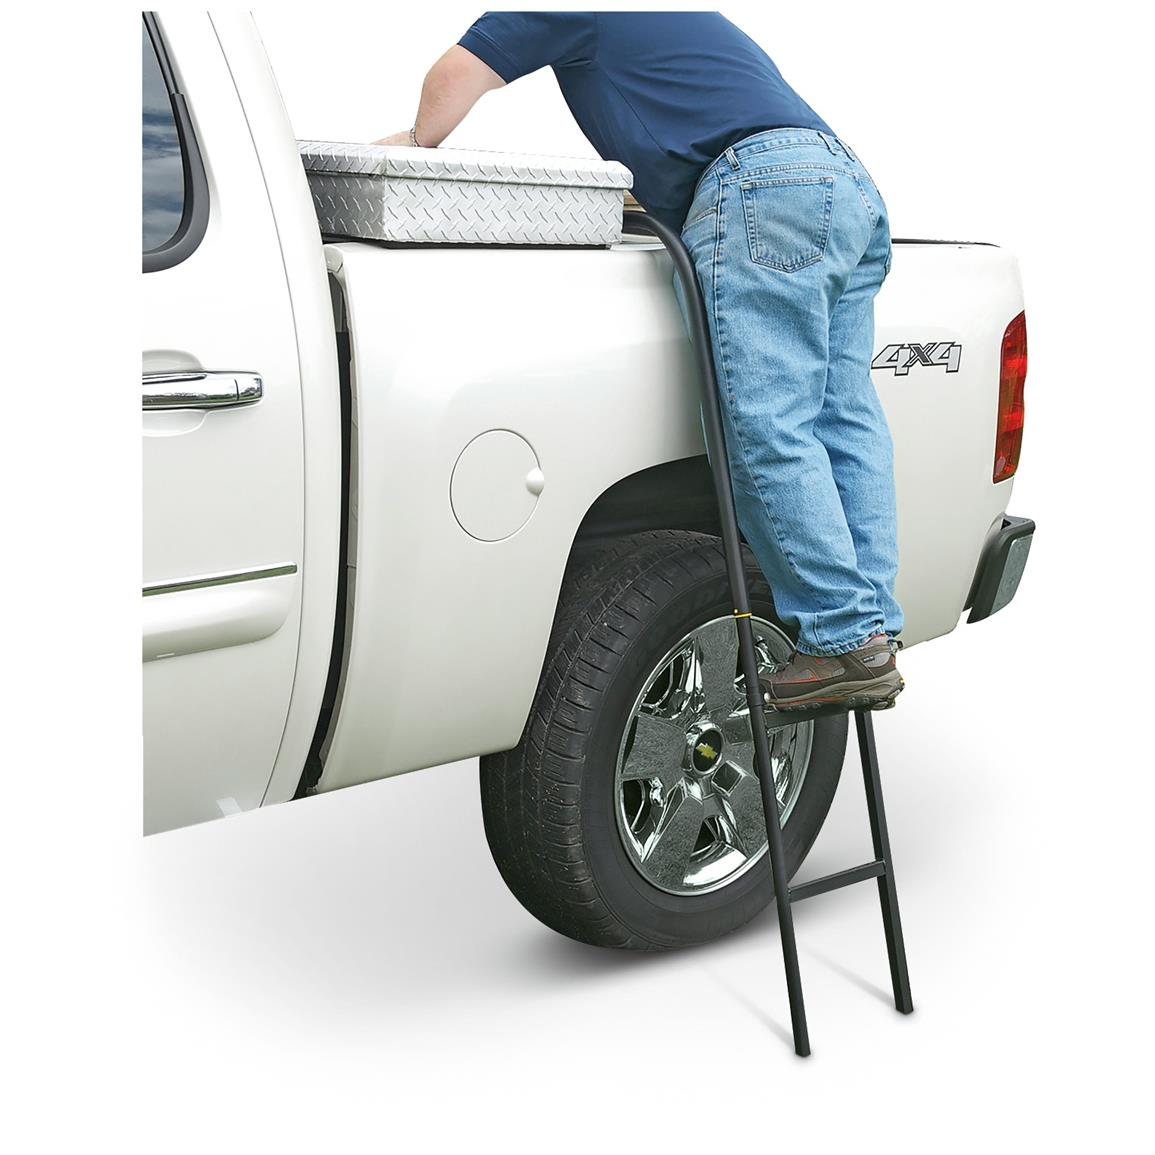 Mounts anywhere along the side of your truck